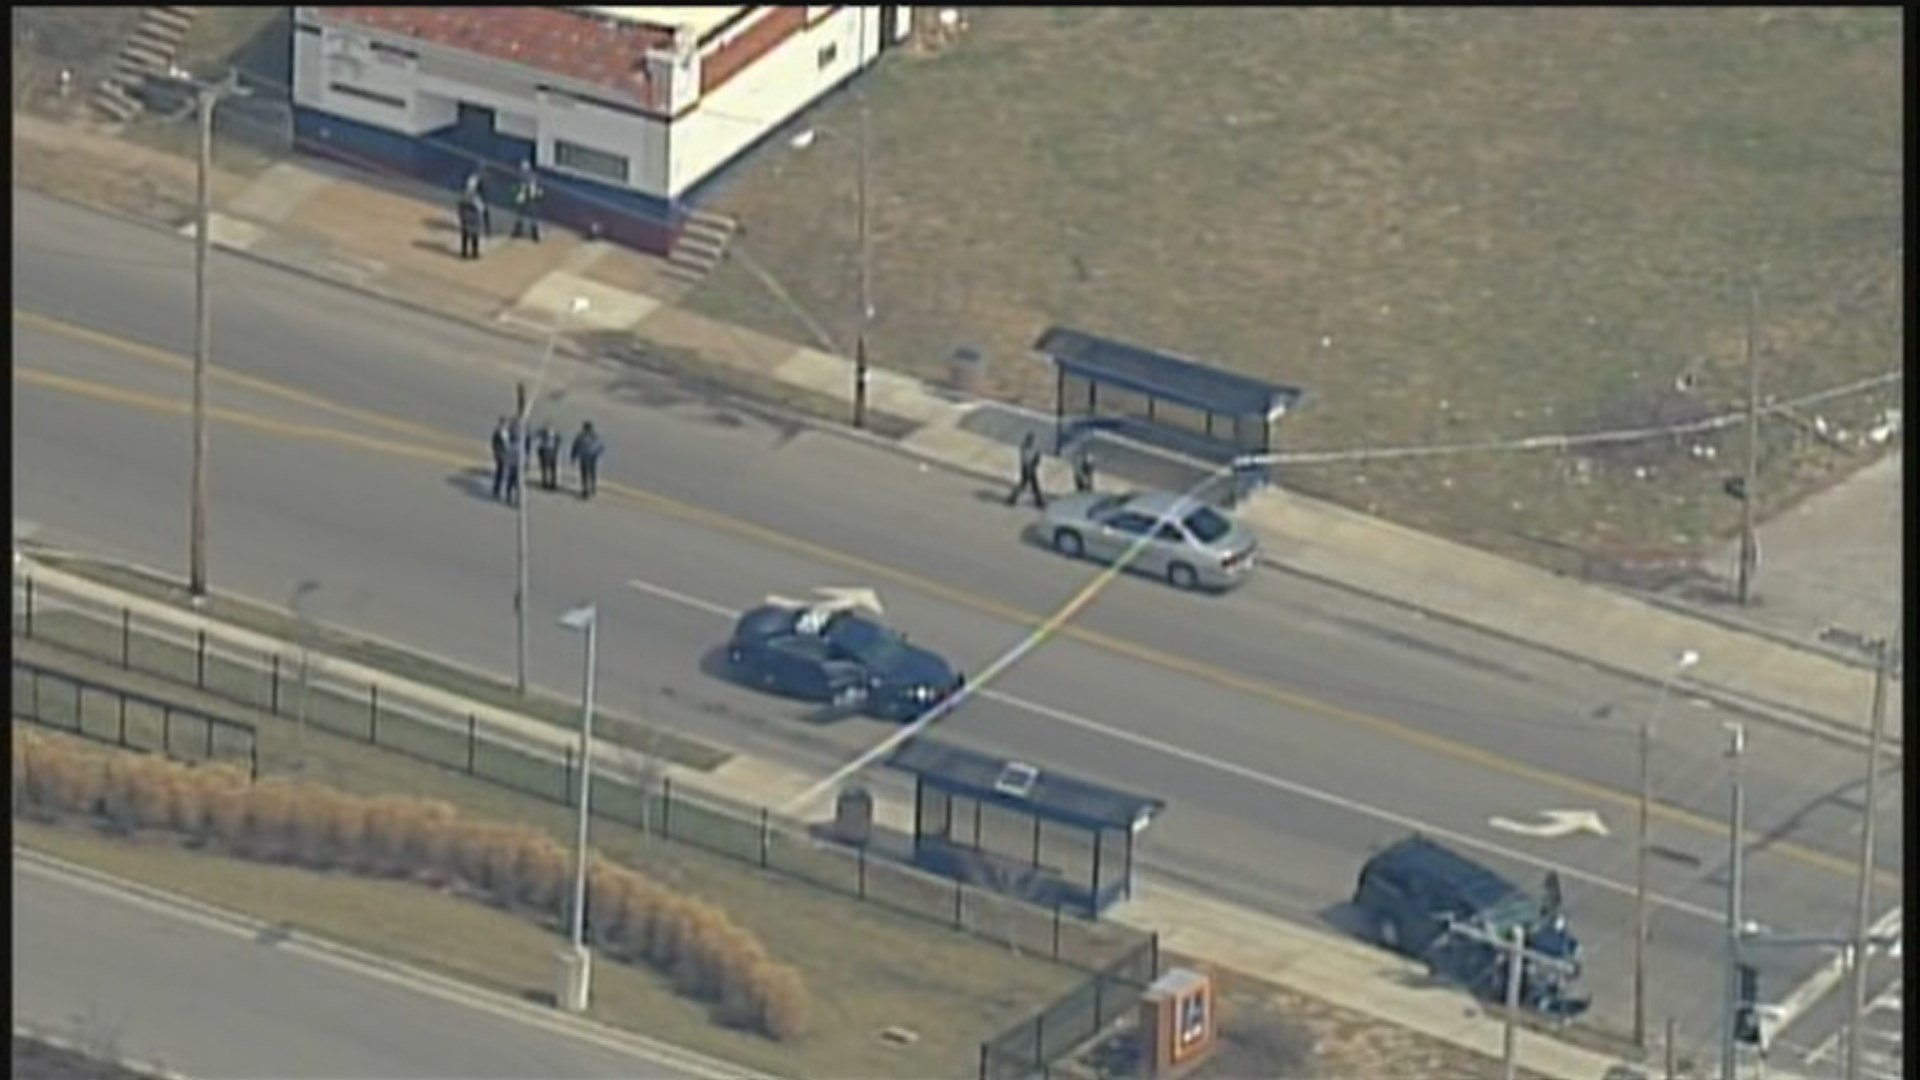 Police are investigating after a man was criticallyinjured in a shooting Tuesday on the city's east side. (Chopper5)